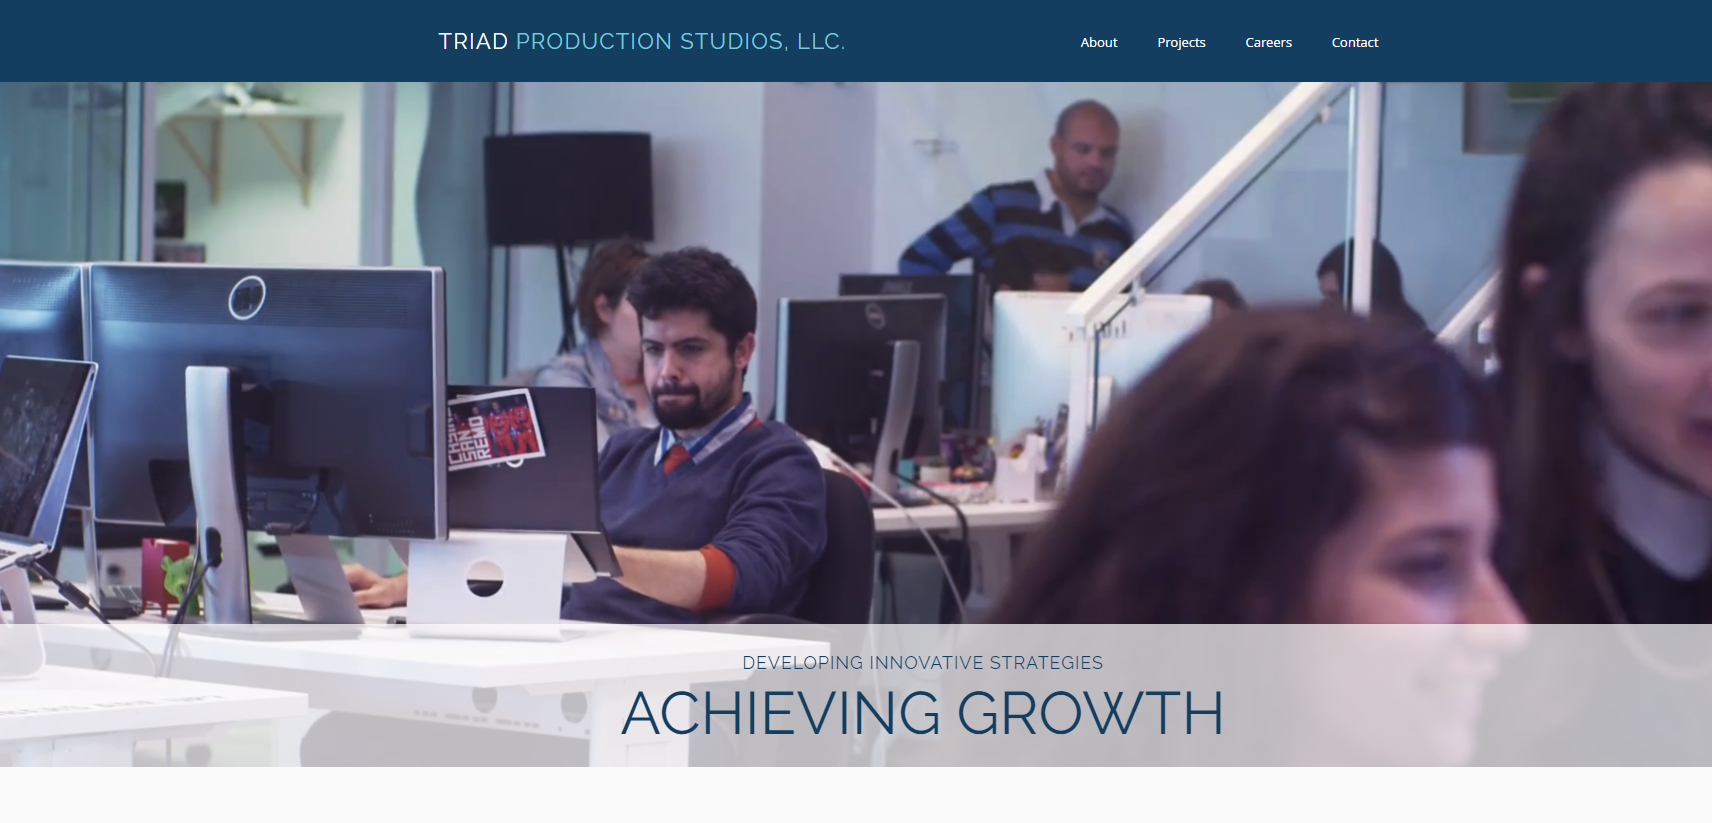 Triad Production Studios